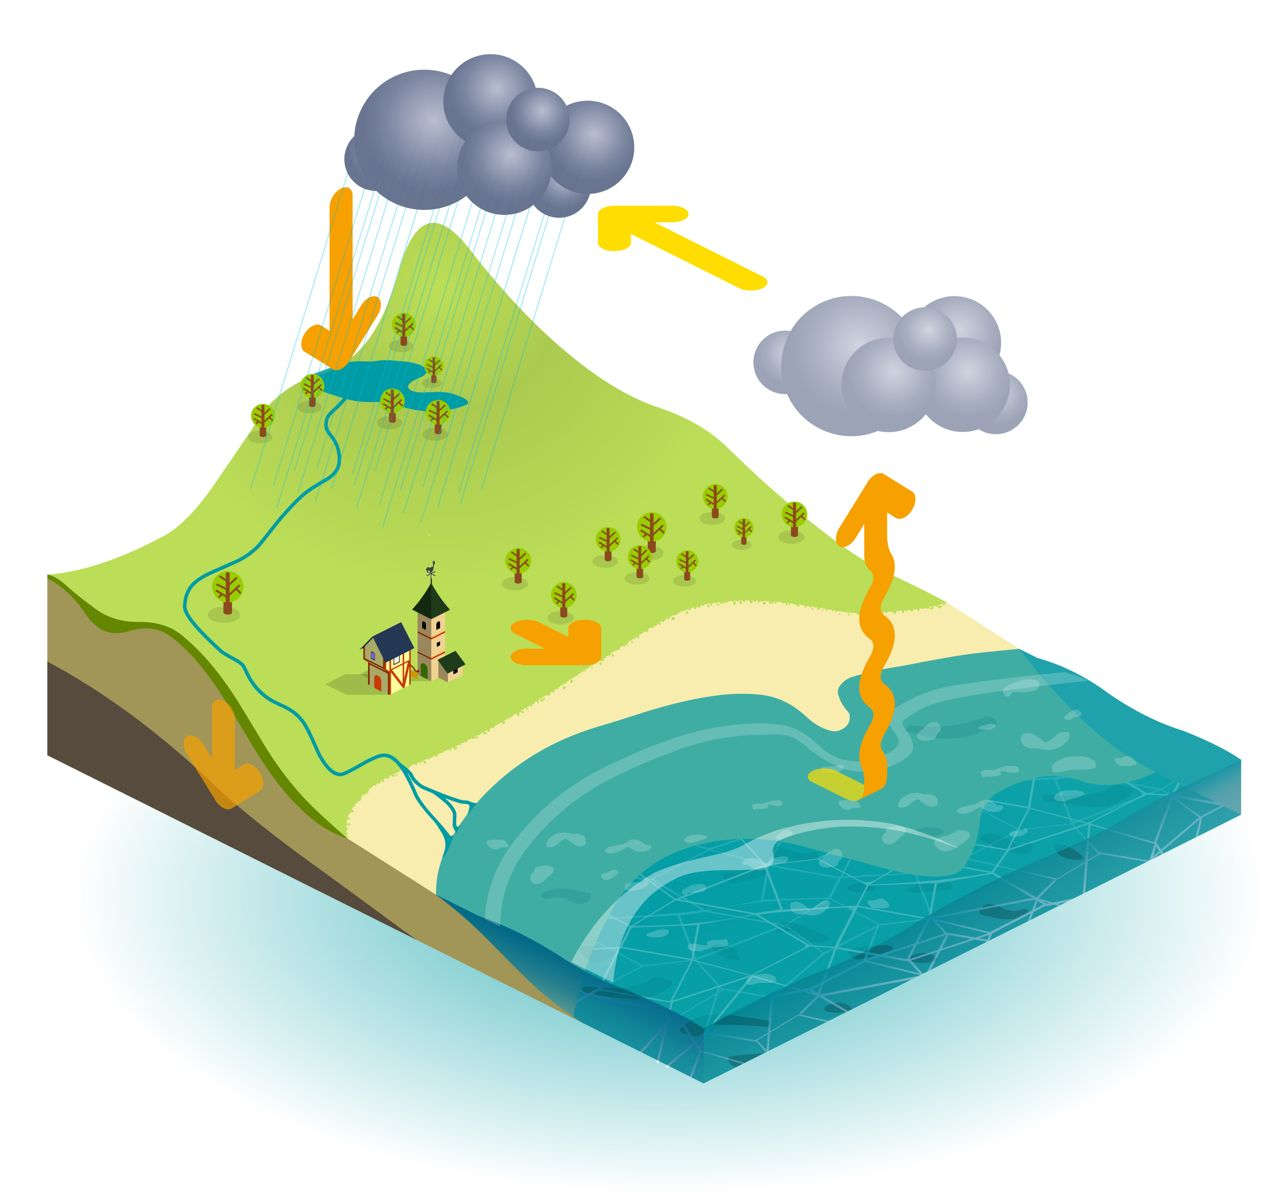 Short Essay On Water Cycle The Water Cycle Essay 02 10